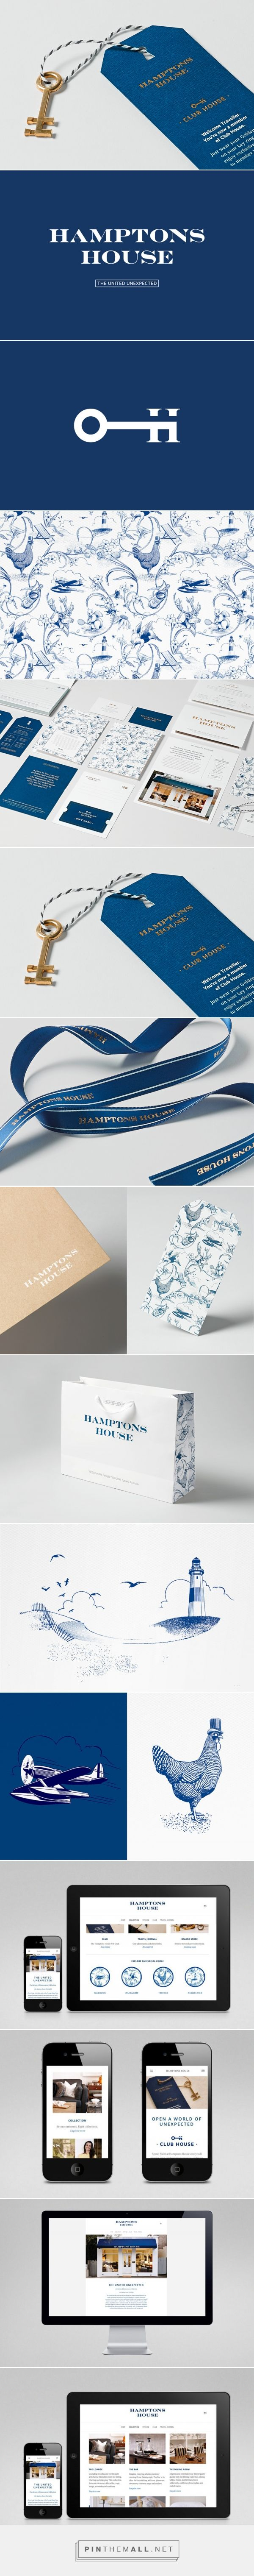 New Brand Identity for Hamptons House by Moffitt.Moffitt - BP&O - created via https://pinthemall.net